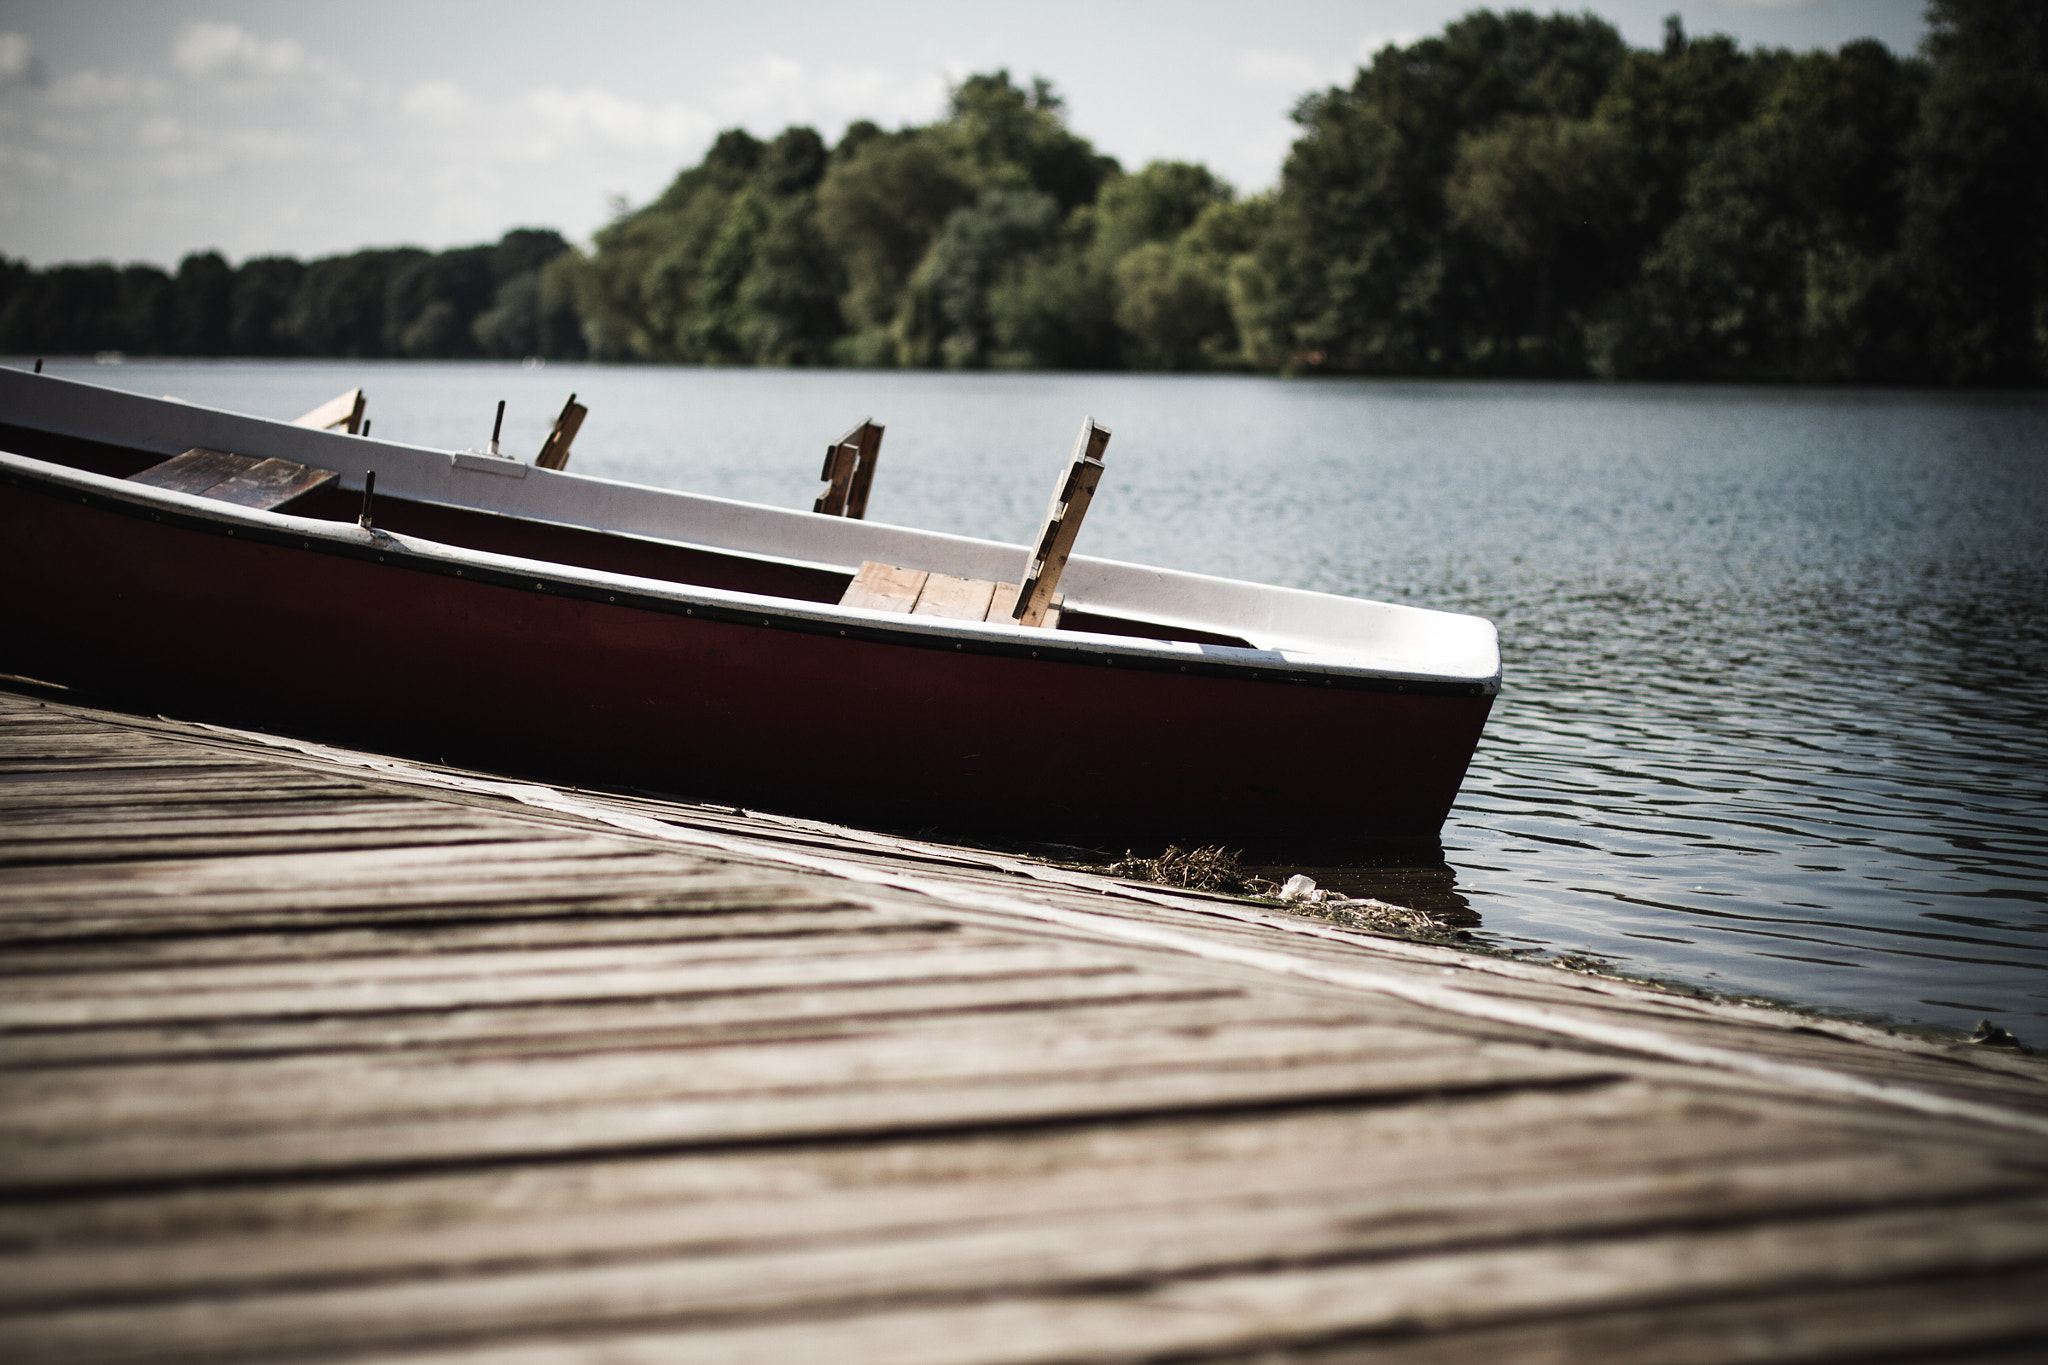 Photograph a boat by Andrea Schunert on 500px